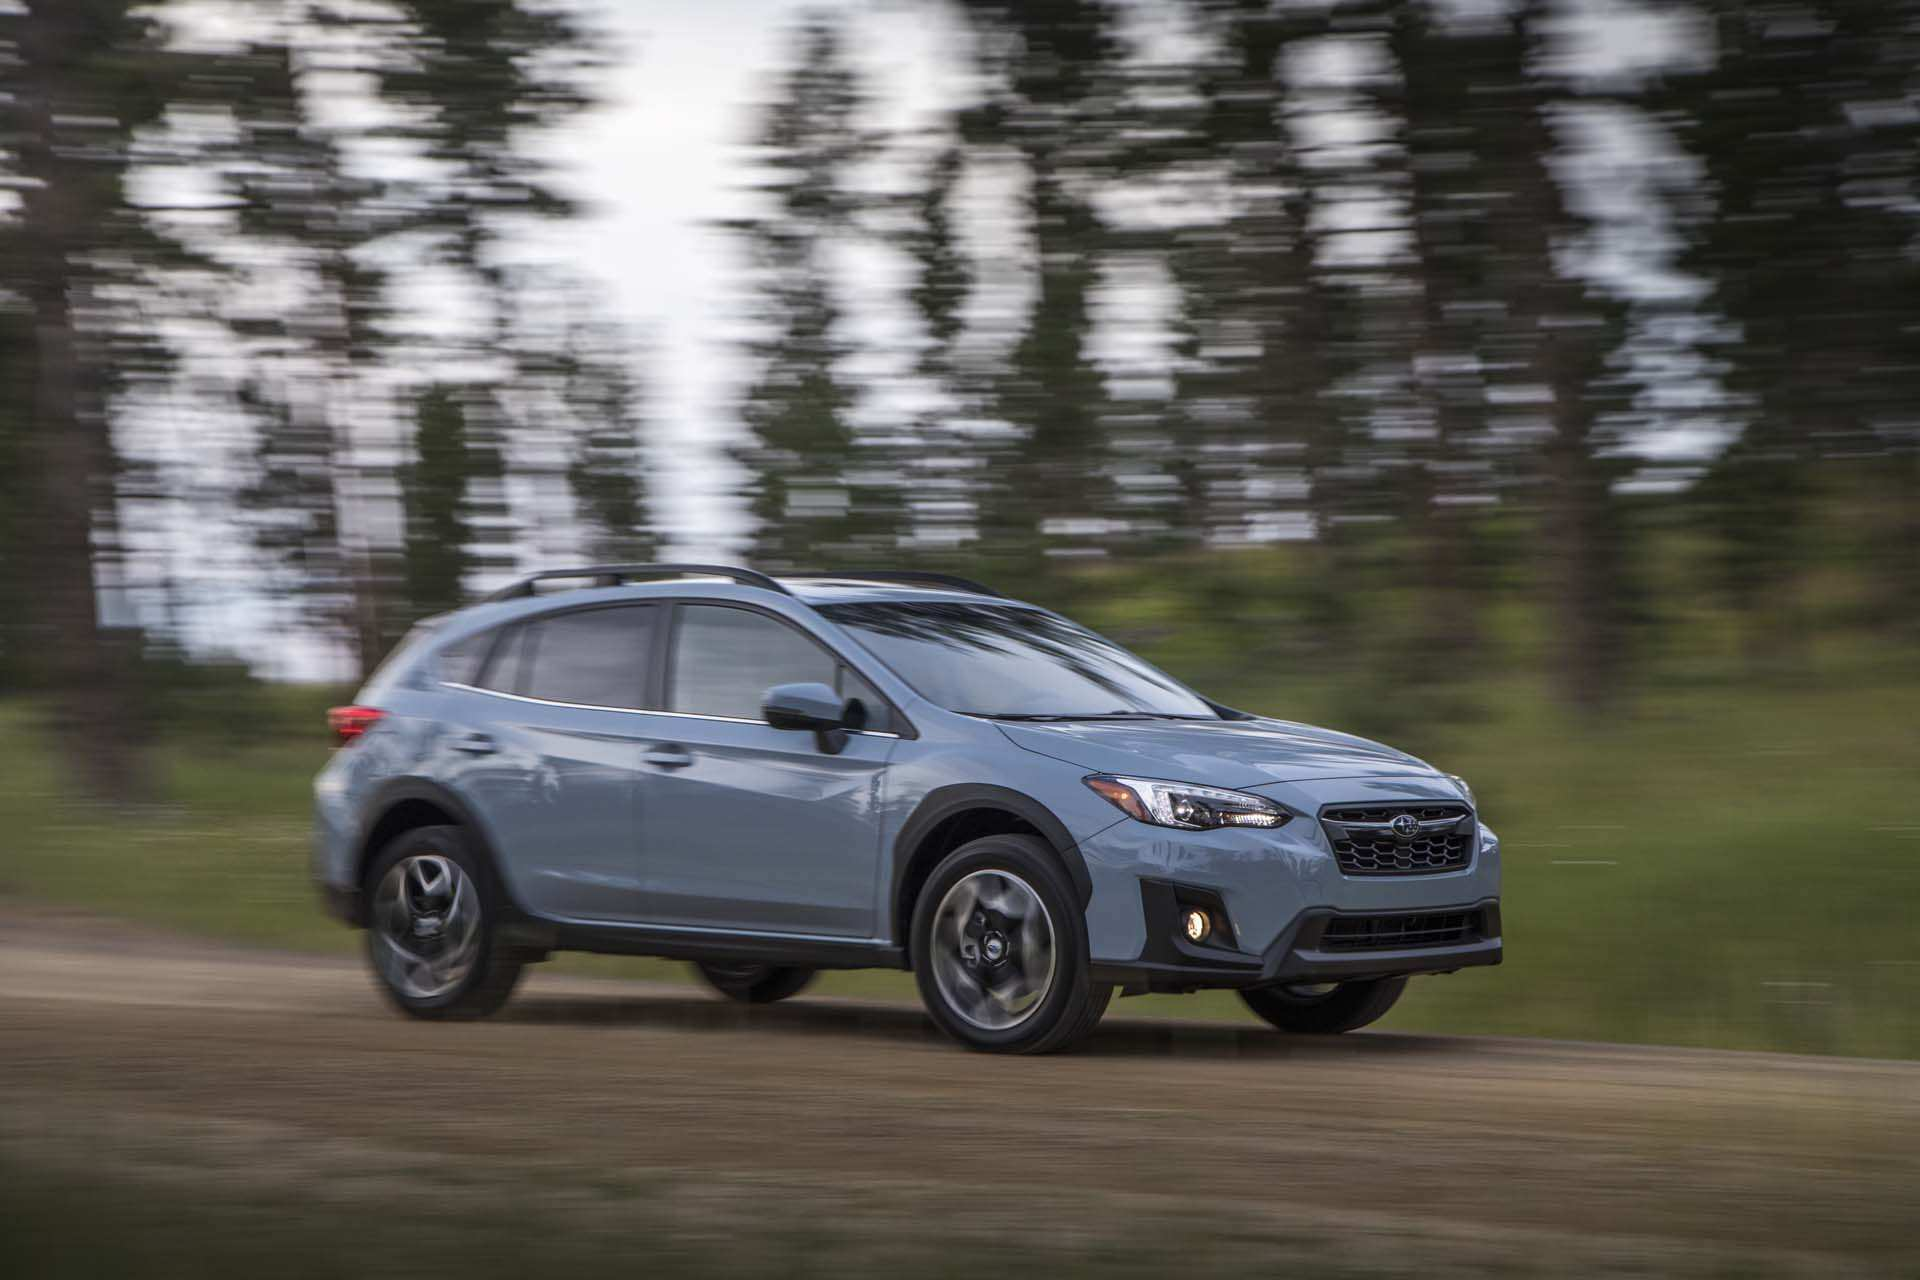 78 A 2019 Subaru Evoltis Rumors